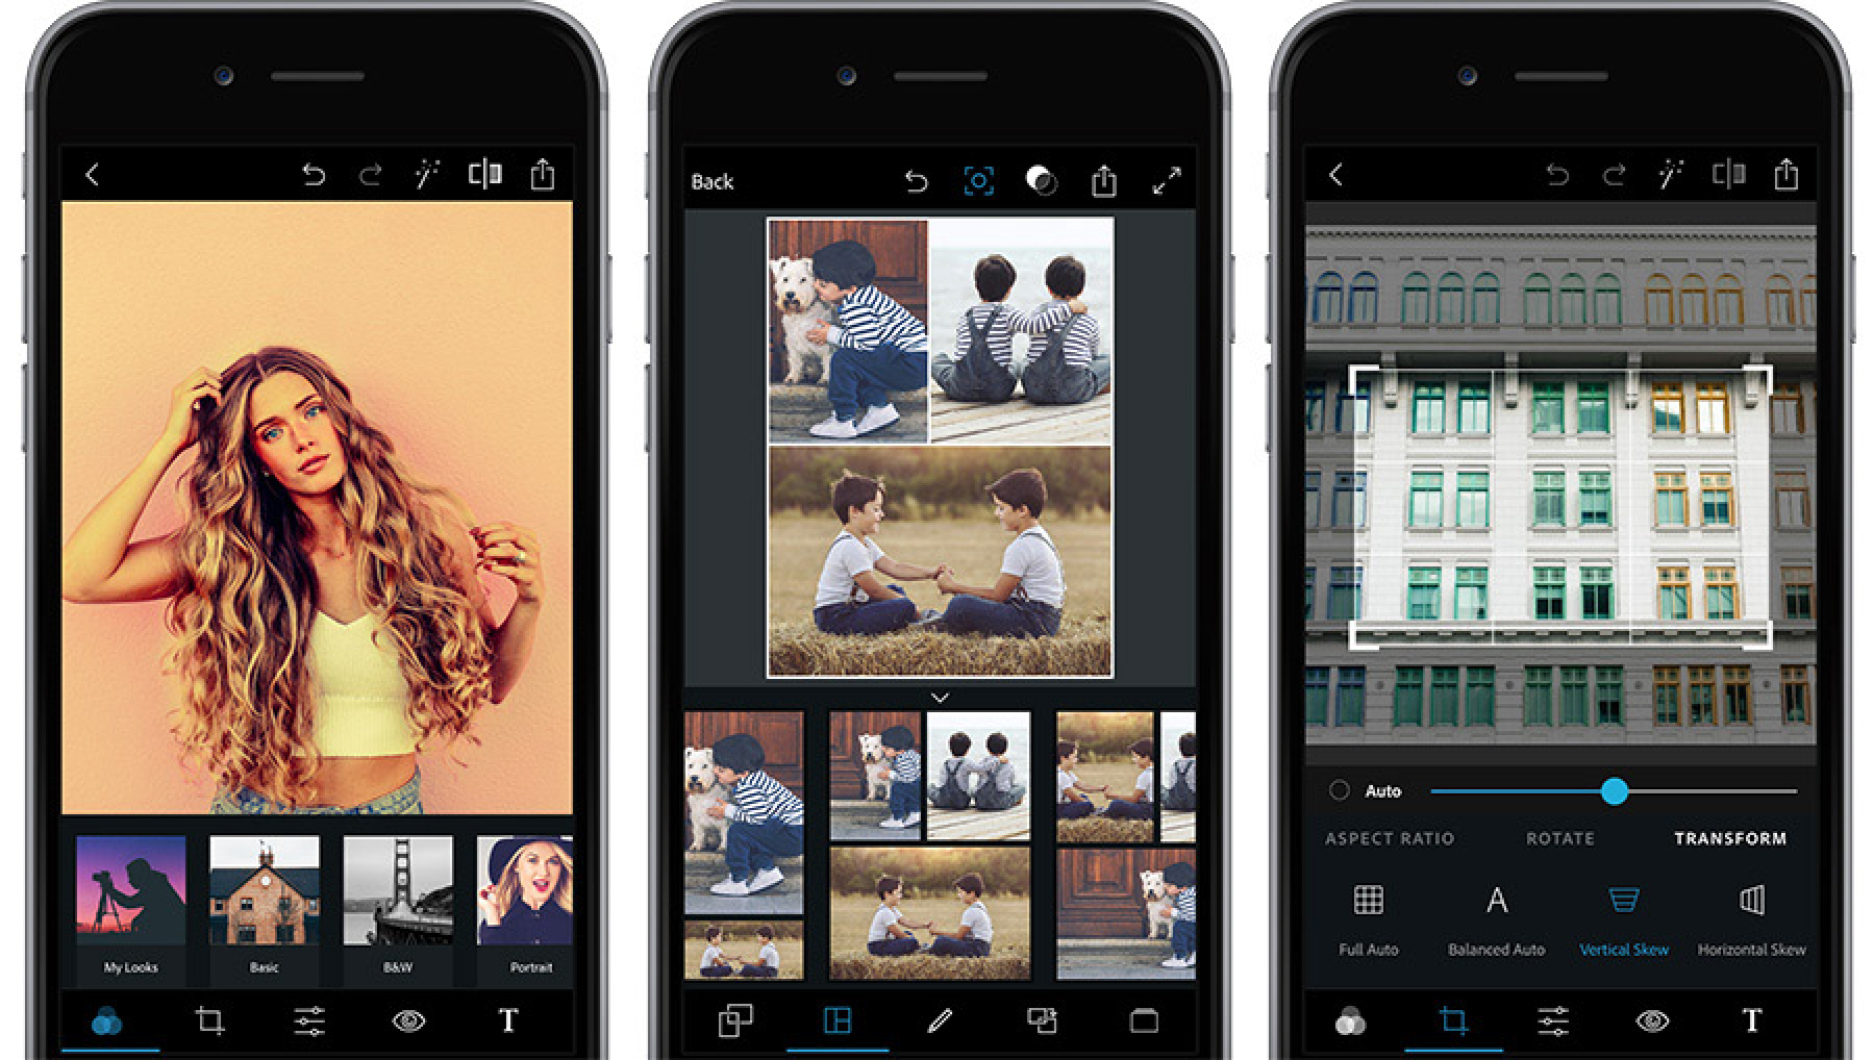 Photoshop Express - For iOS: Available free on the App StoreFor Android: Available free on Google Play